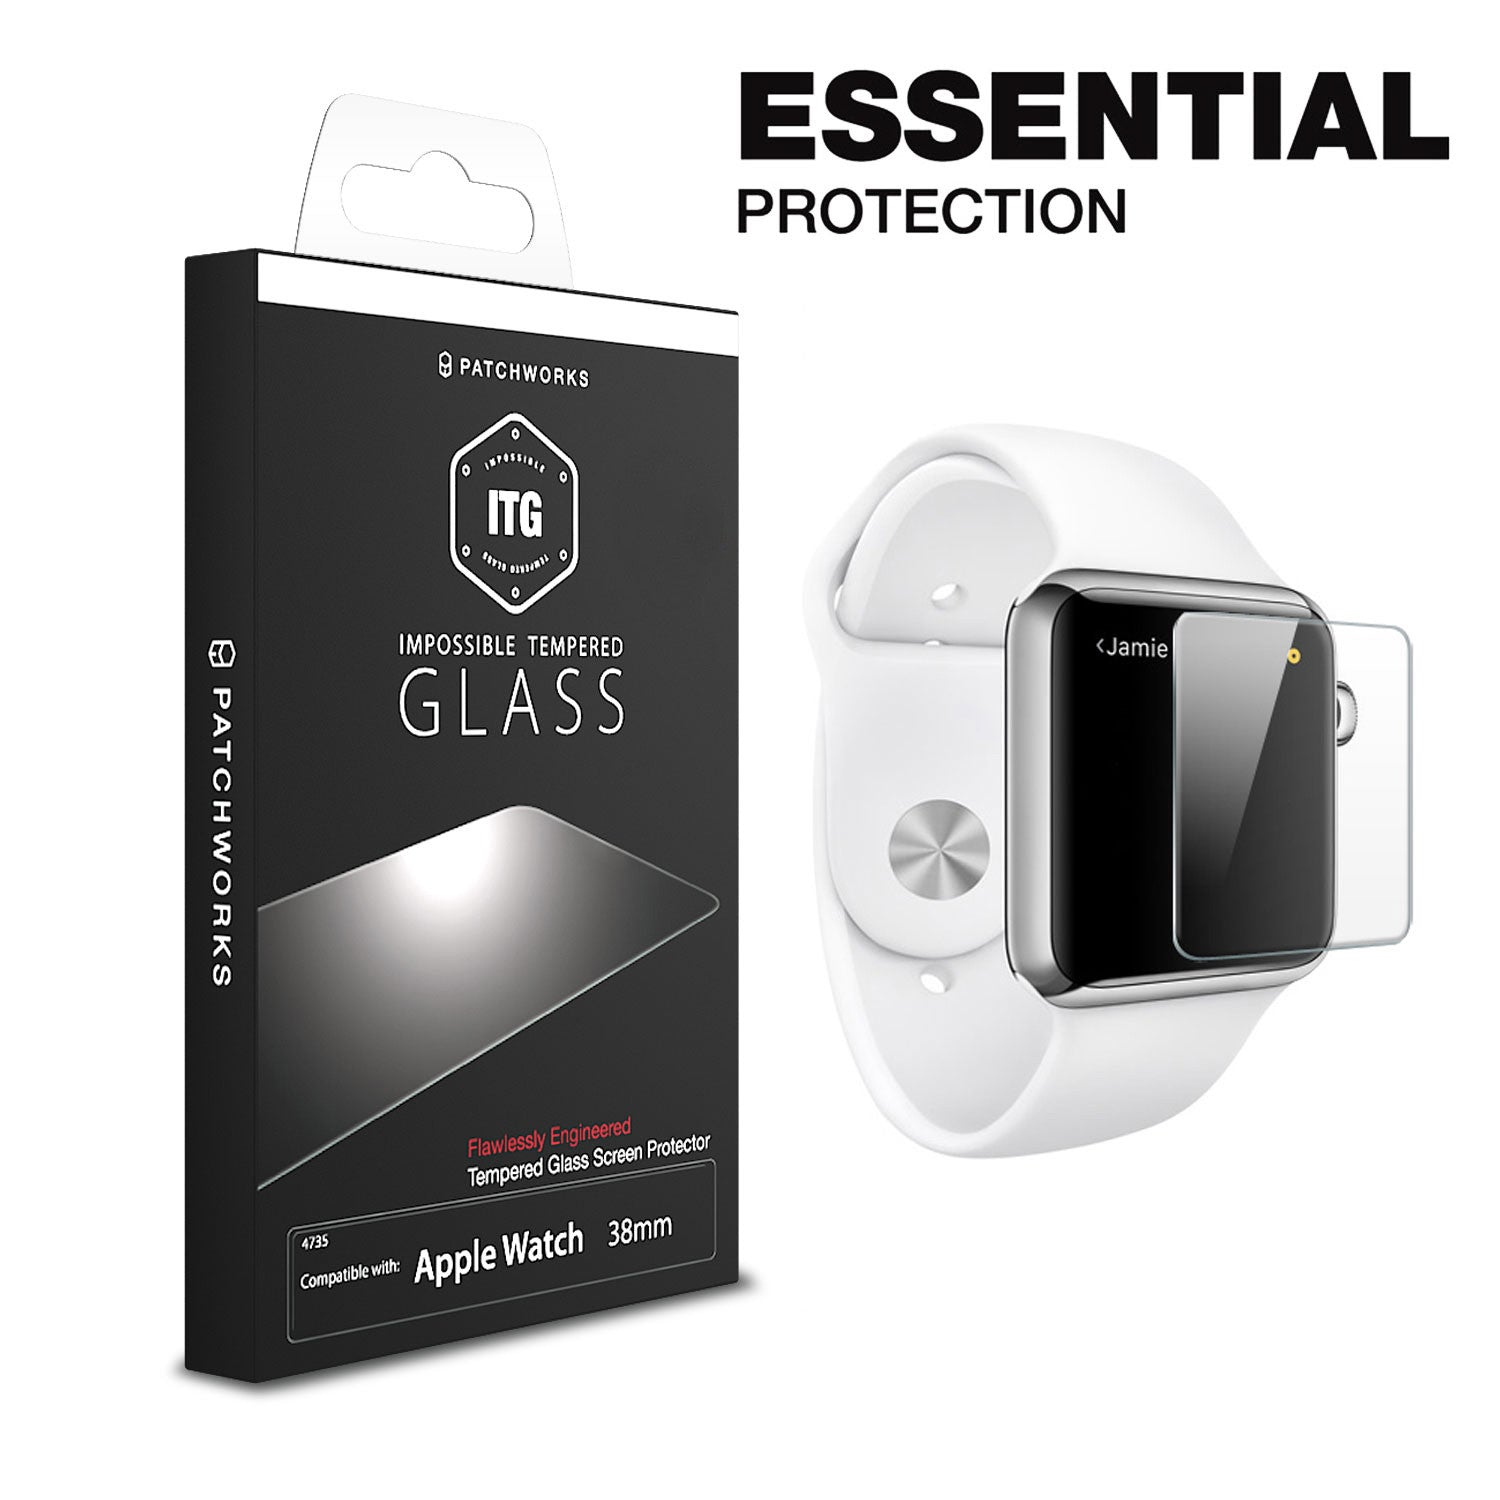 Apple Watch ITG Plus screen protector